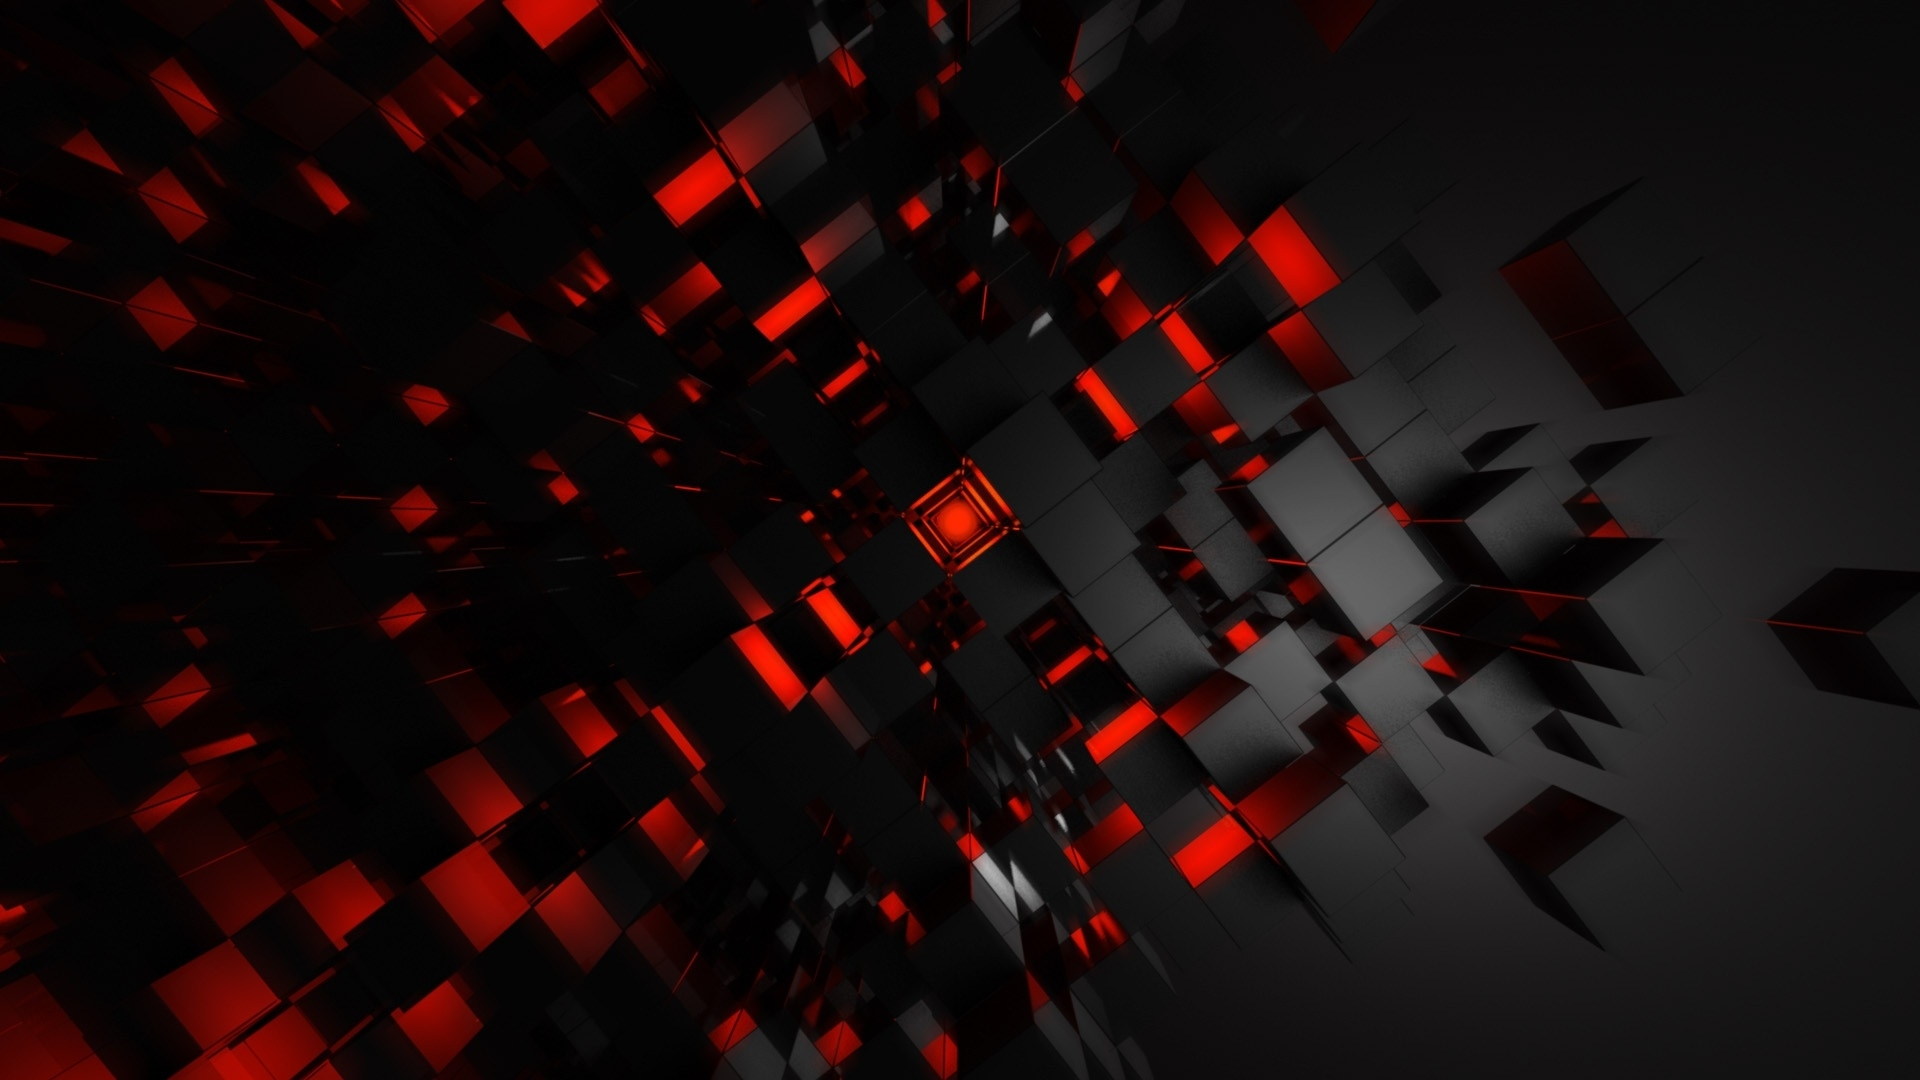 3d And Abstract Wallpapers - HD Desktop Backgrounds - Page 25